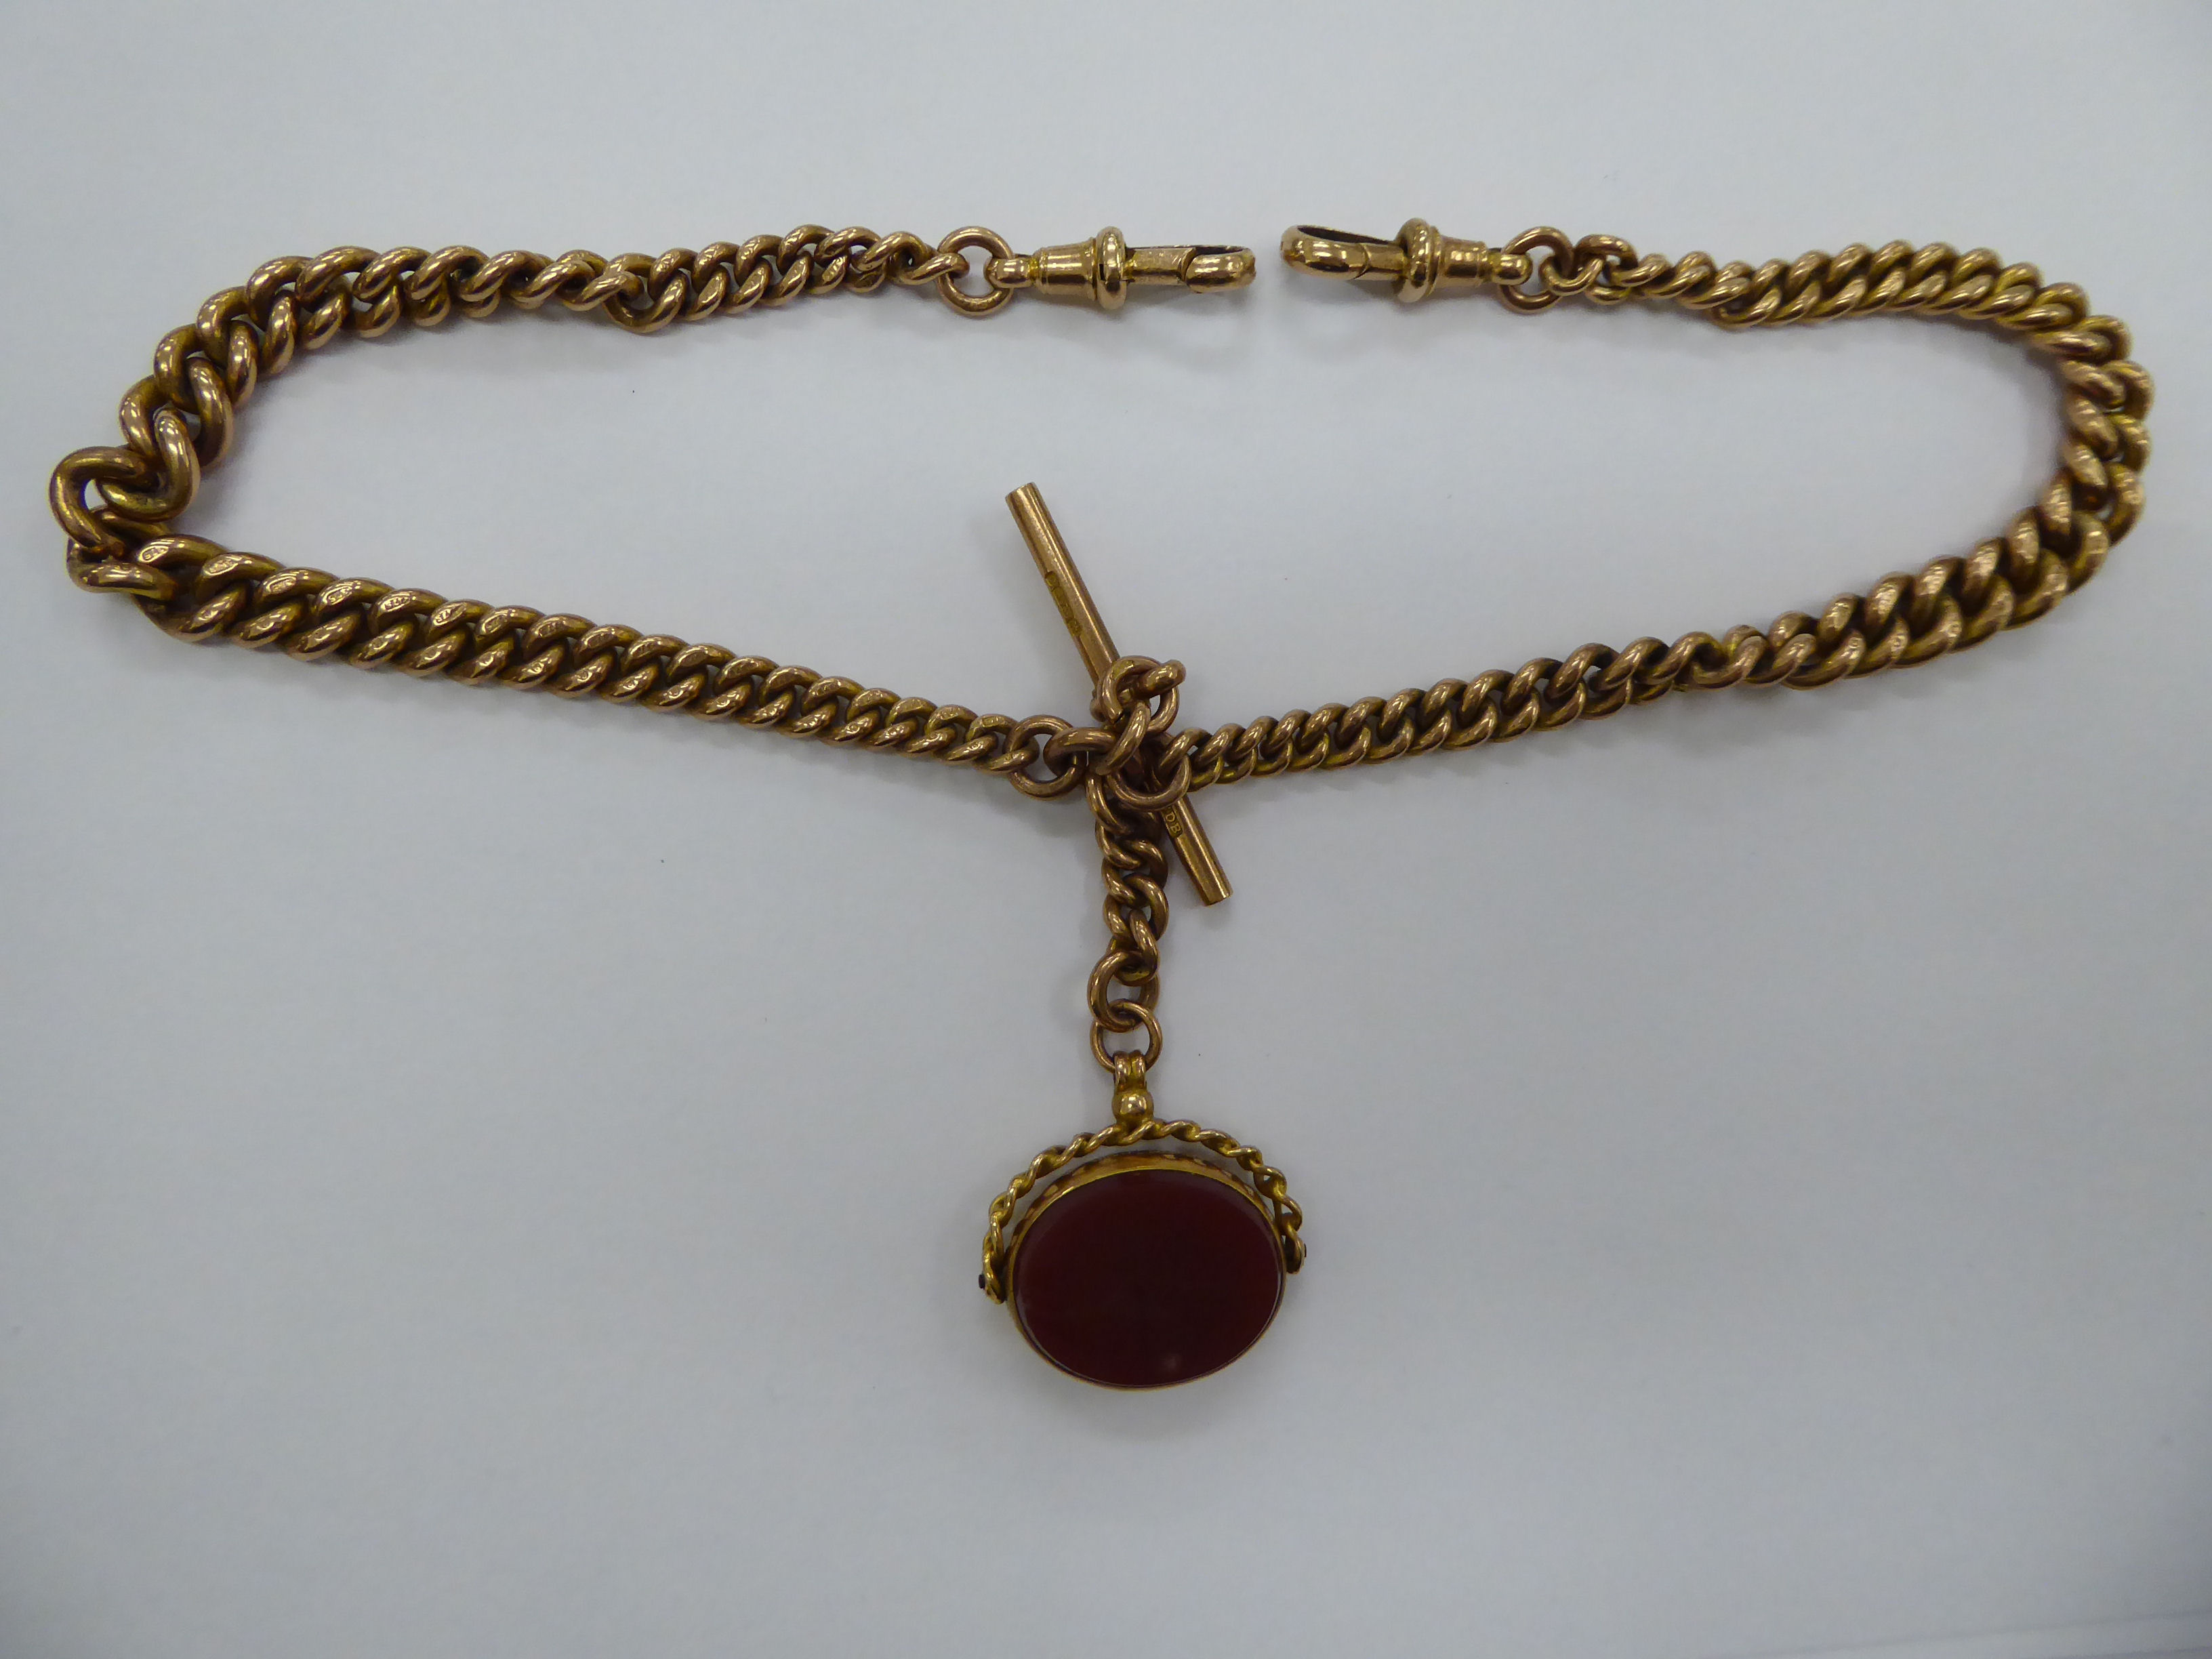 Lot 28 - A 9ct gold fob watch double chain with a T-bar and swivel bloodstone set pendant 11